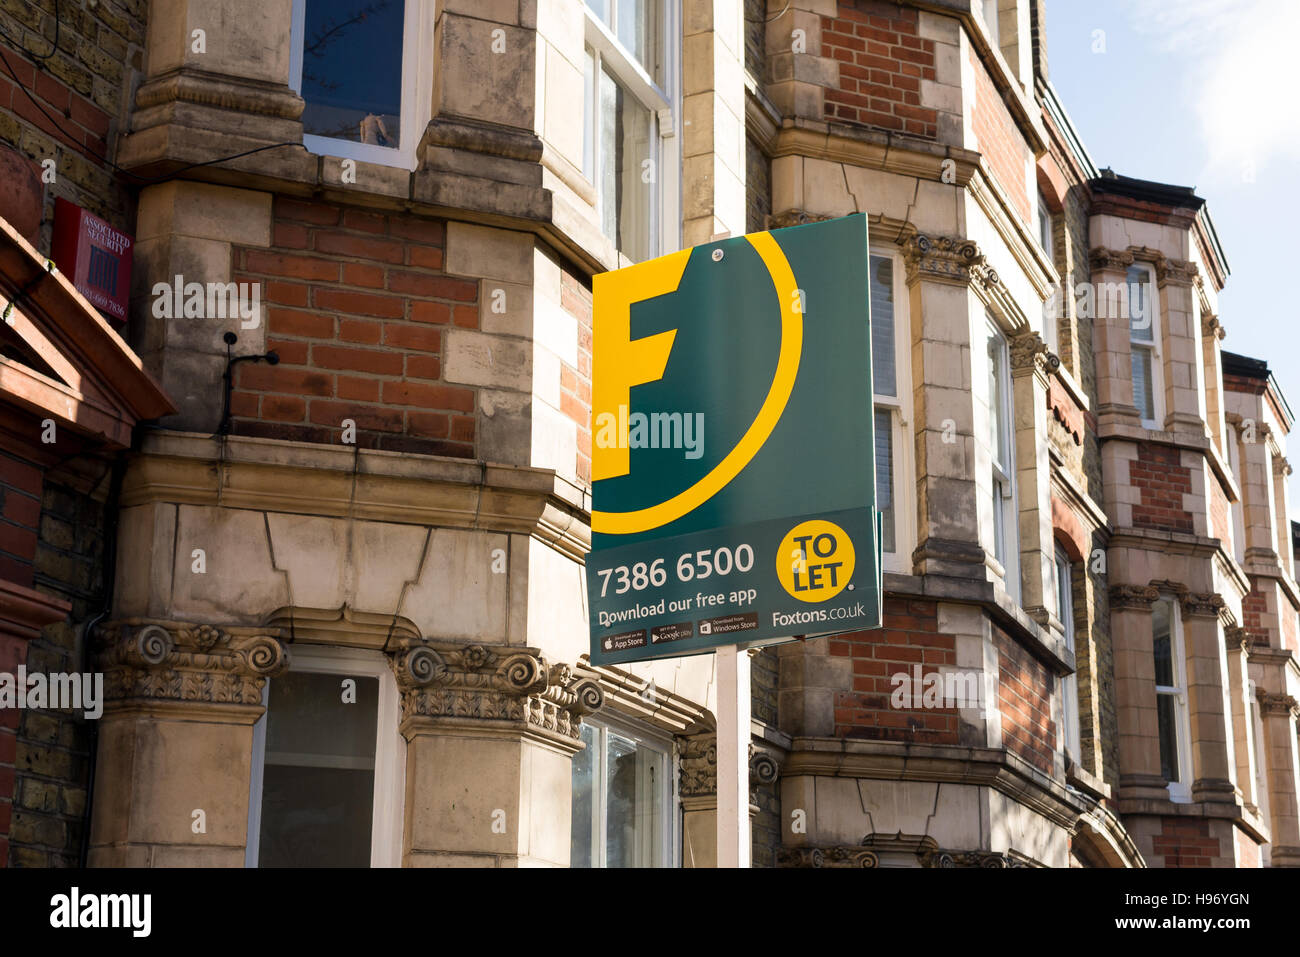 Foxtons Estate agent sign outside a row of Victorian terraced houses in London, England. - Stock Image